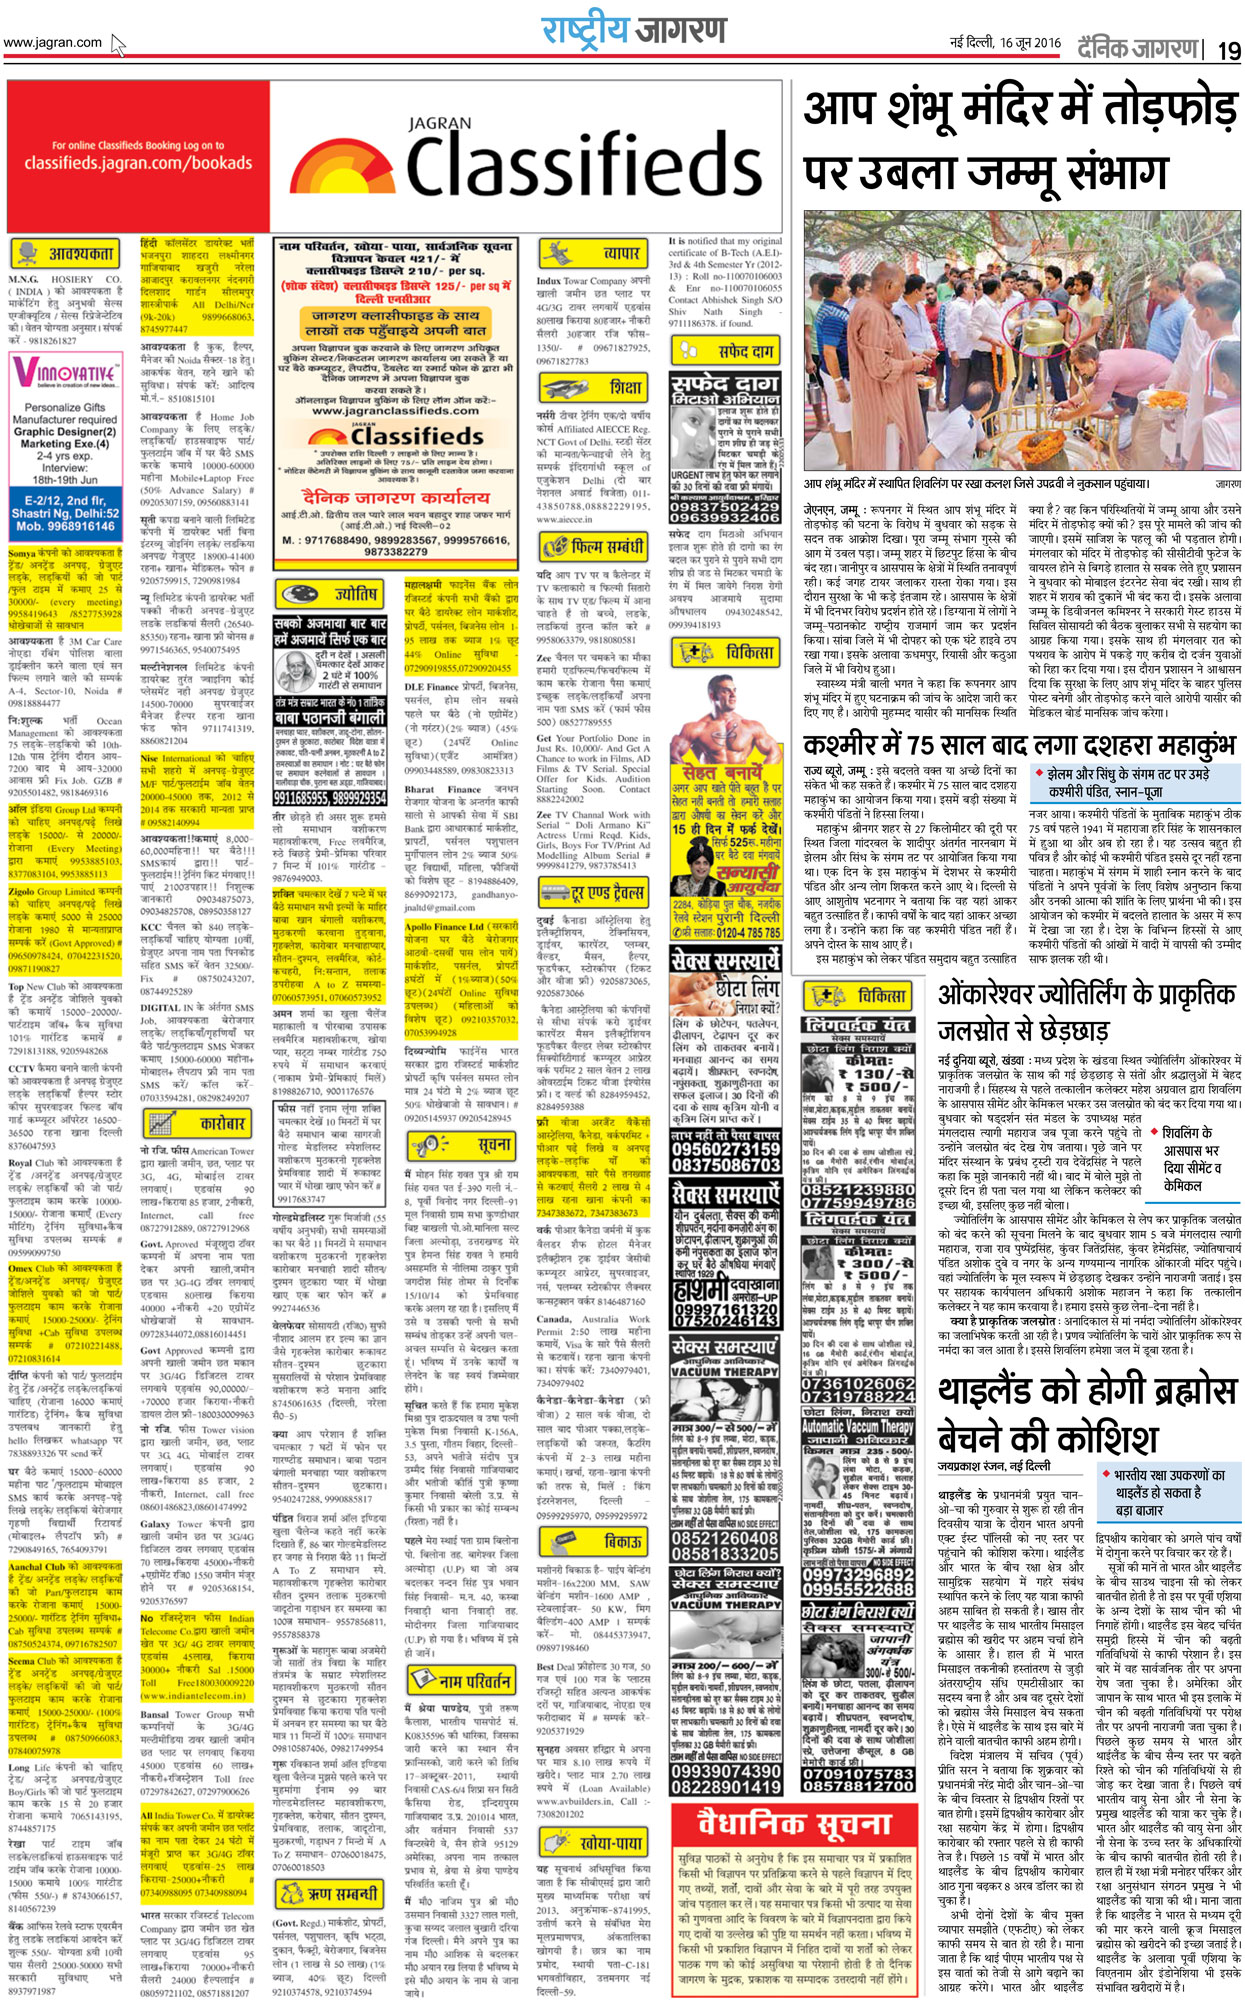 Dainik Jagran Classified Ad Rates